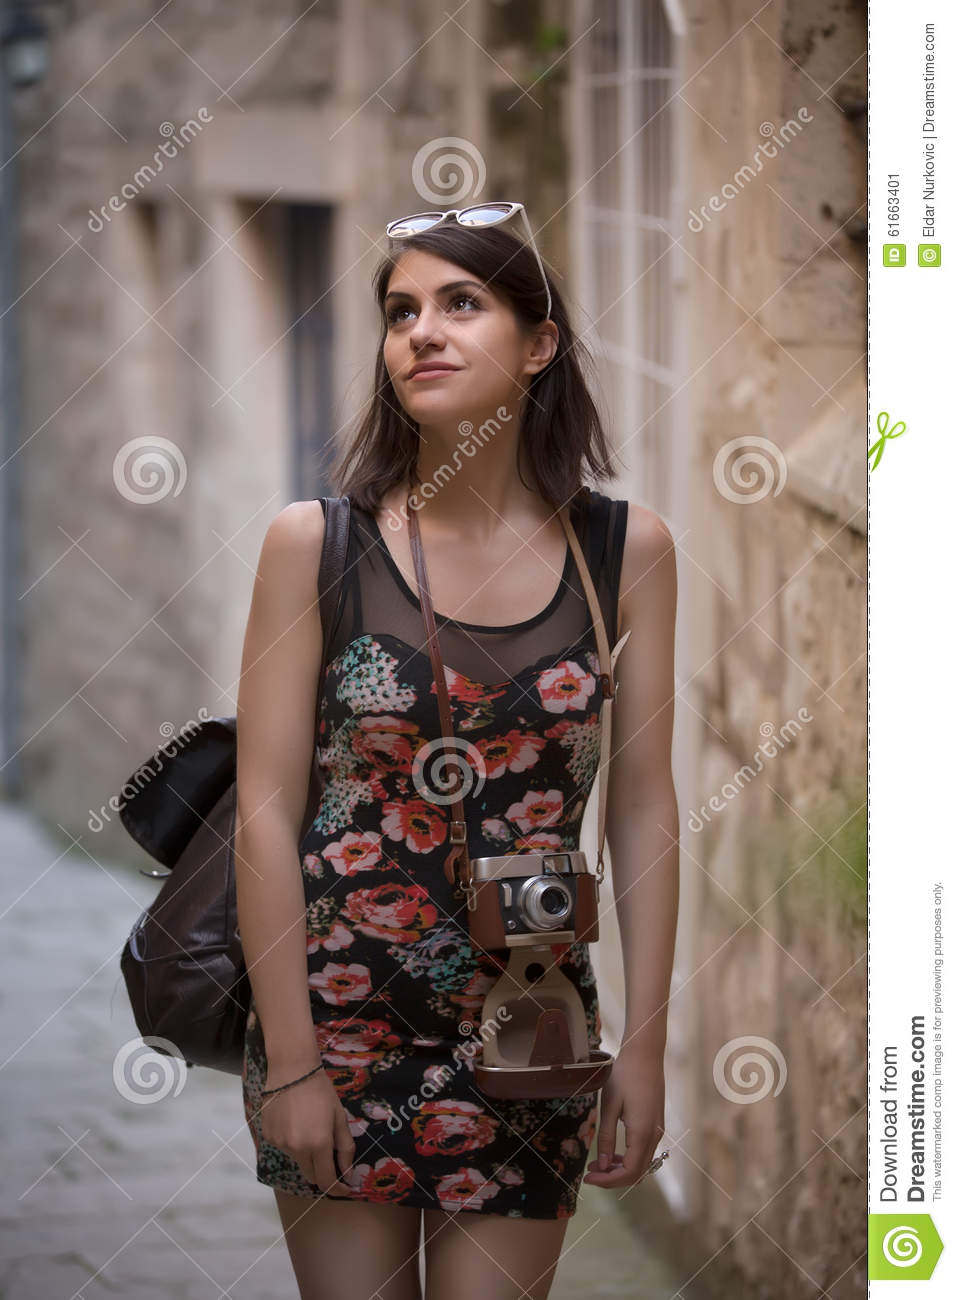 Outdoor summer smiling lifestyle portrait of pretty young woman having fun in the city in Europe with vintage analog camera. Woman